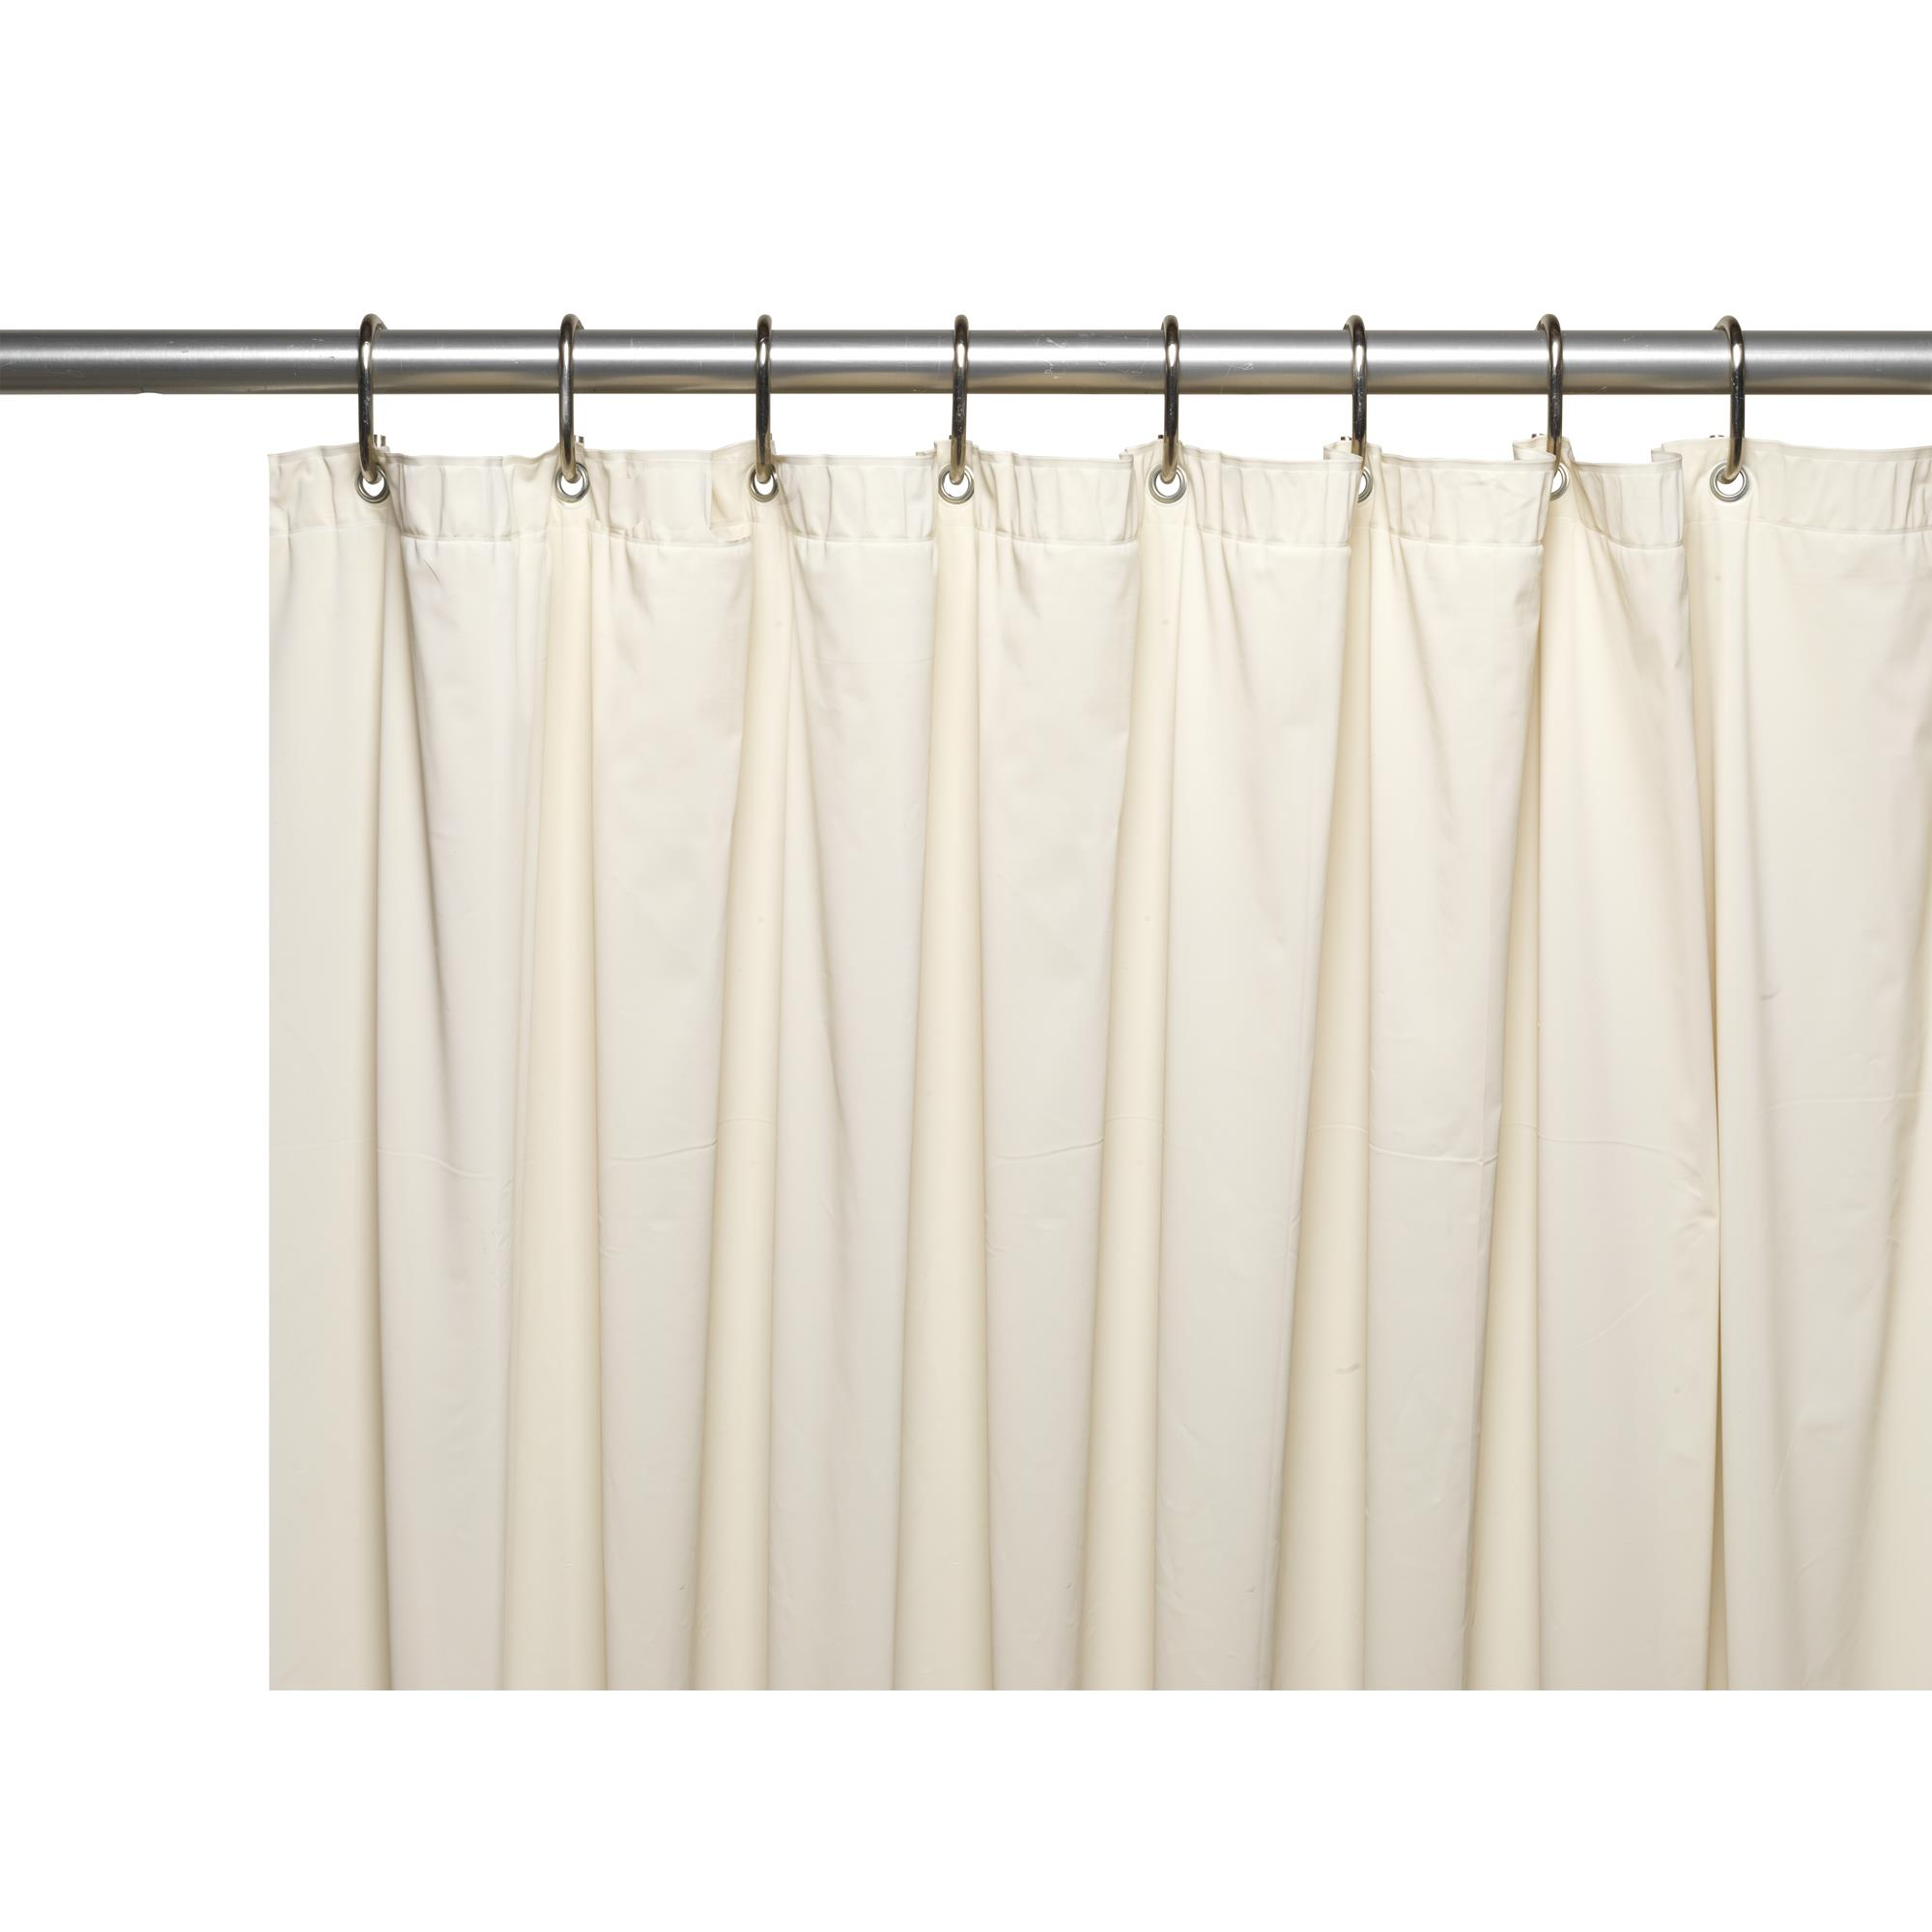 Extra Long (70'' x 84'') Mildew-Resistant, 10 Gauge Vinyl Shower Curtain Liner w/ Metal Grommets and Reinforced Mesh Header in Bone